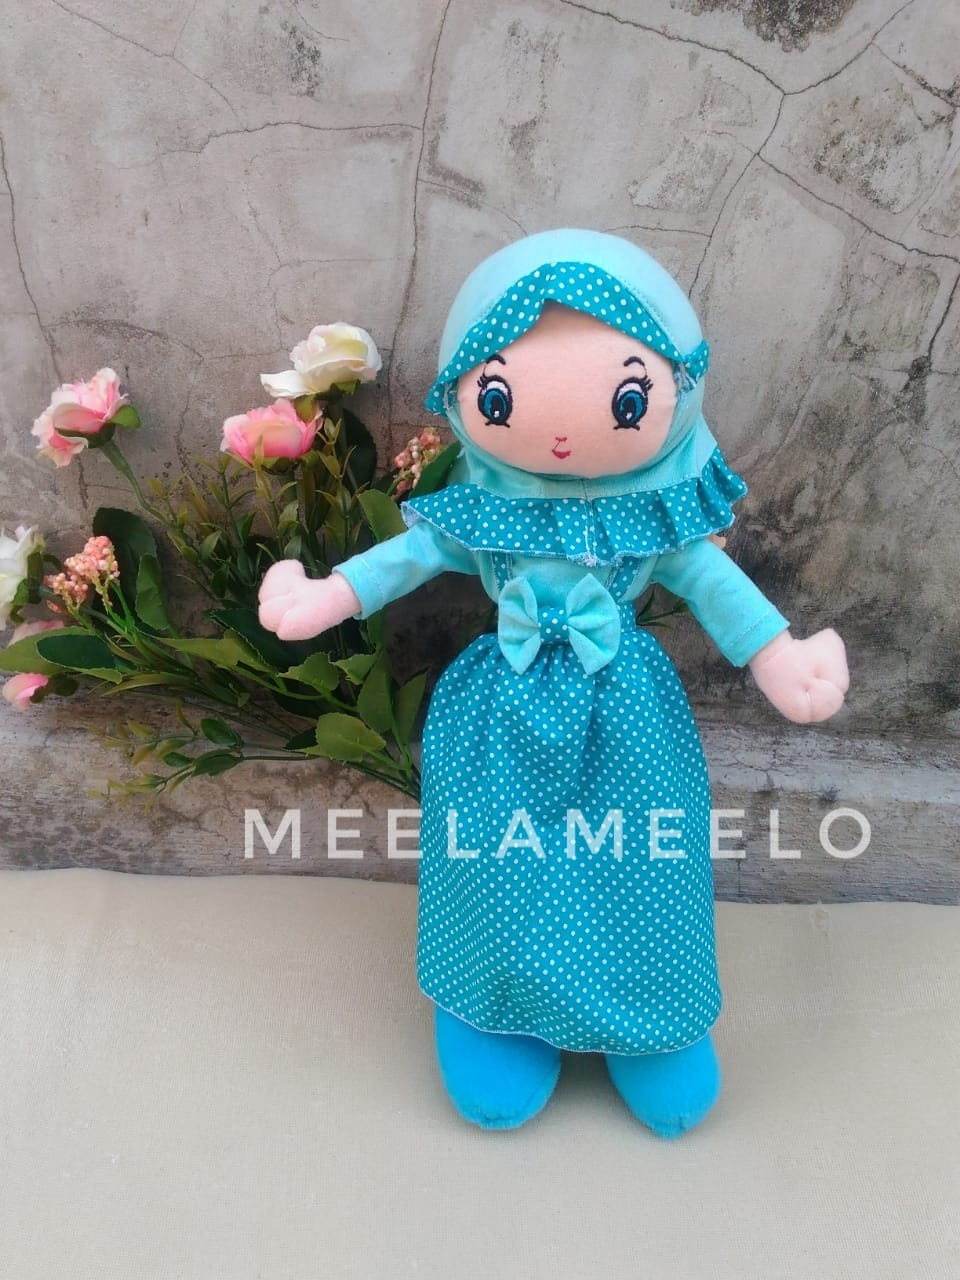 Promo Boneka Muslimah in All Blue Polka  60K ONLY